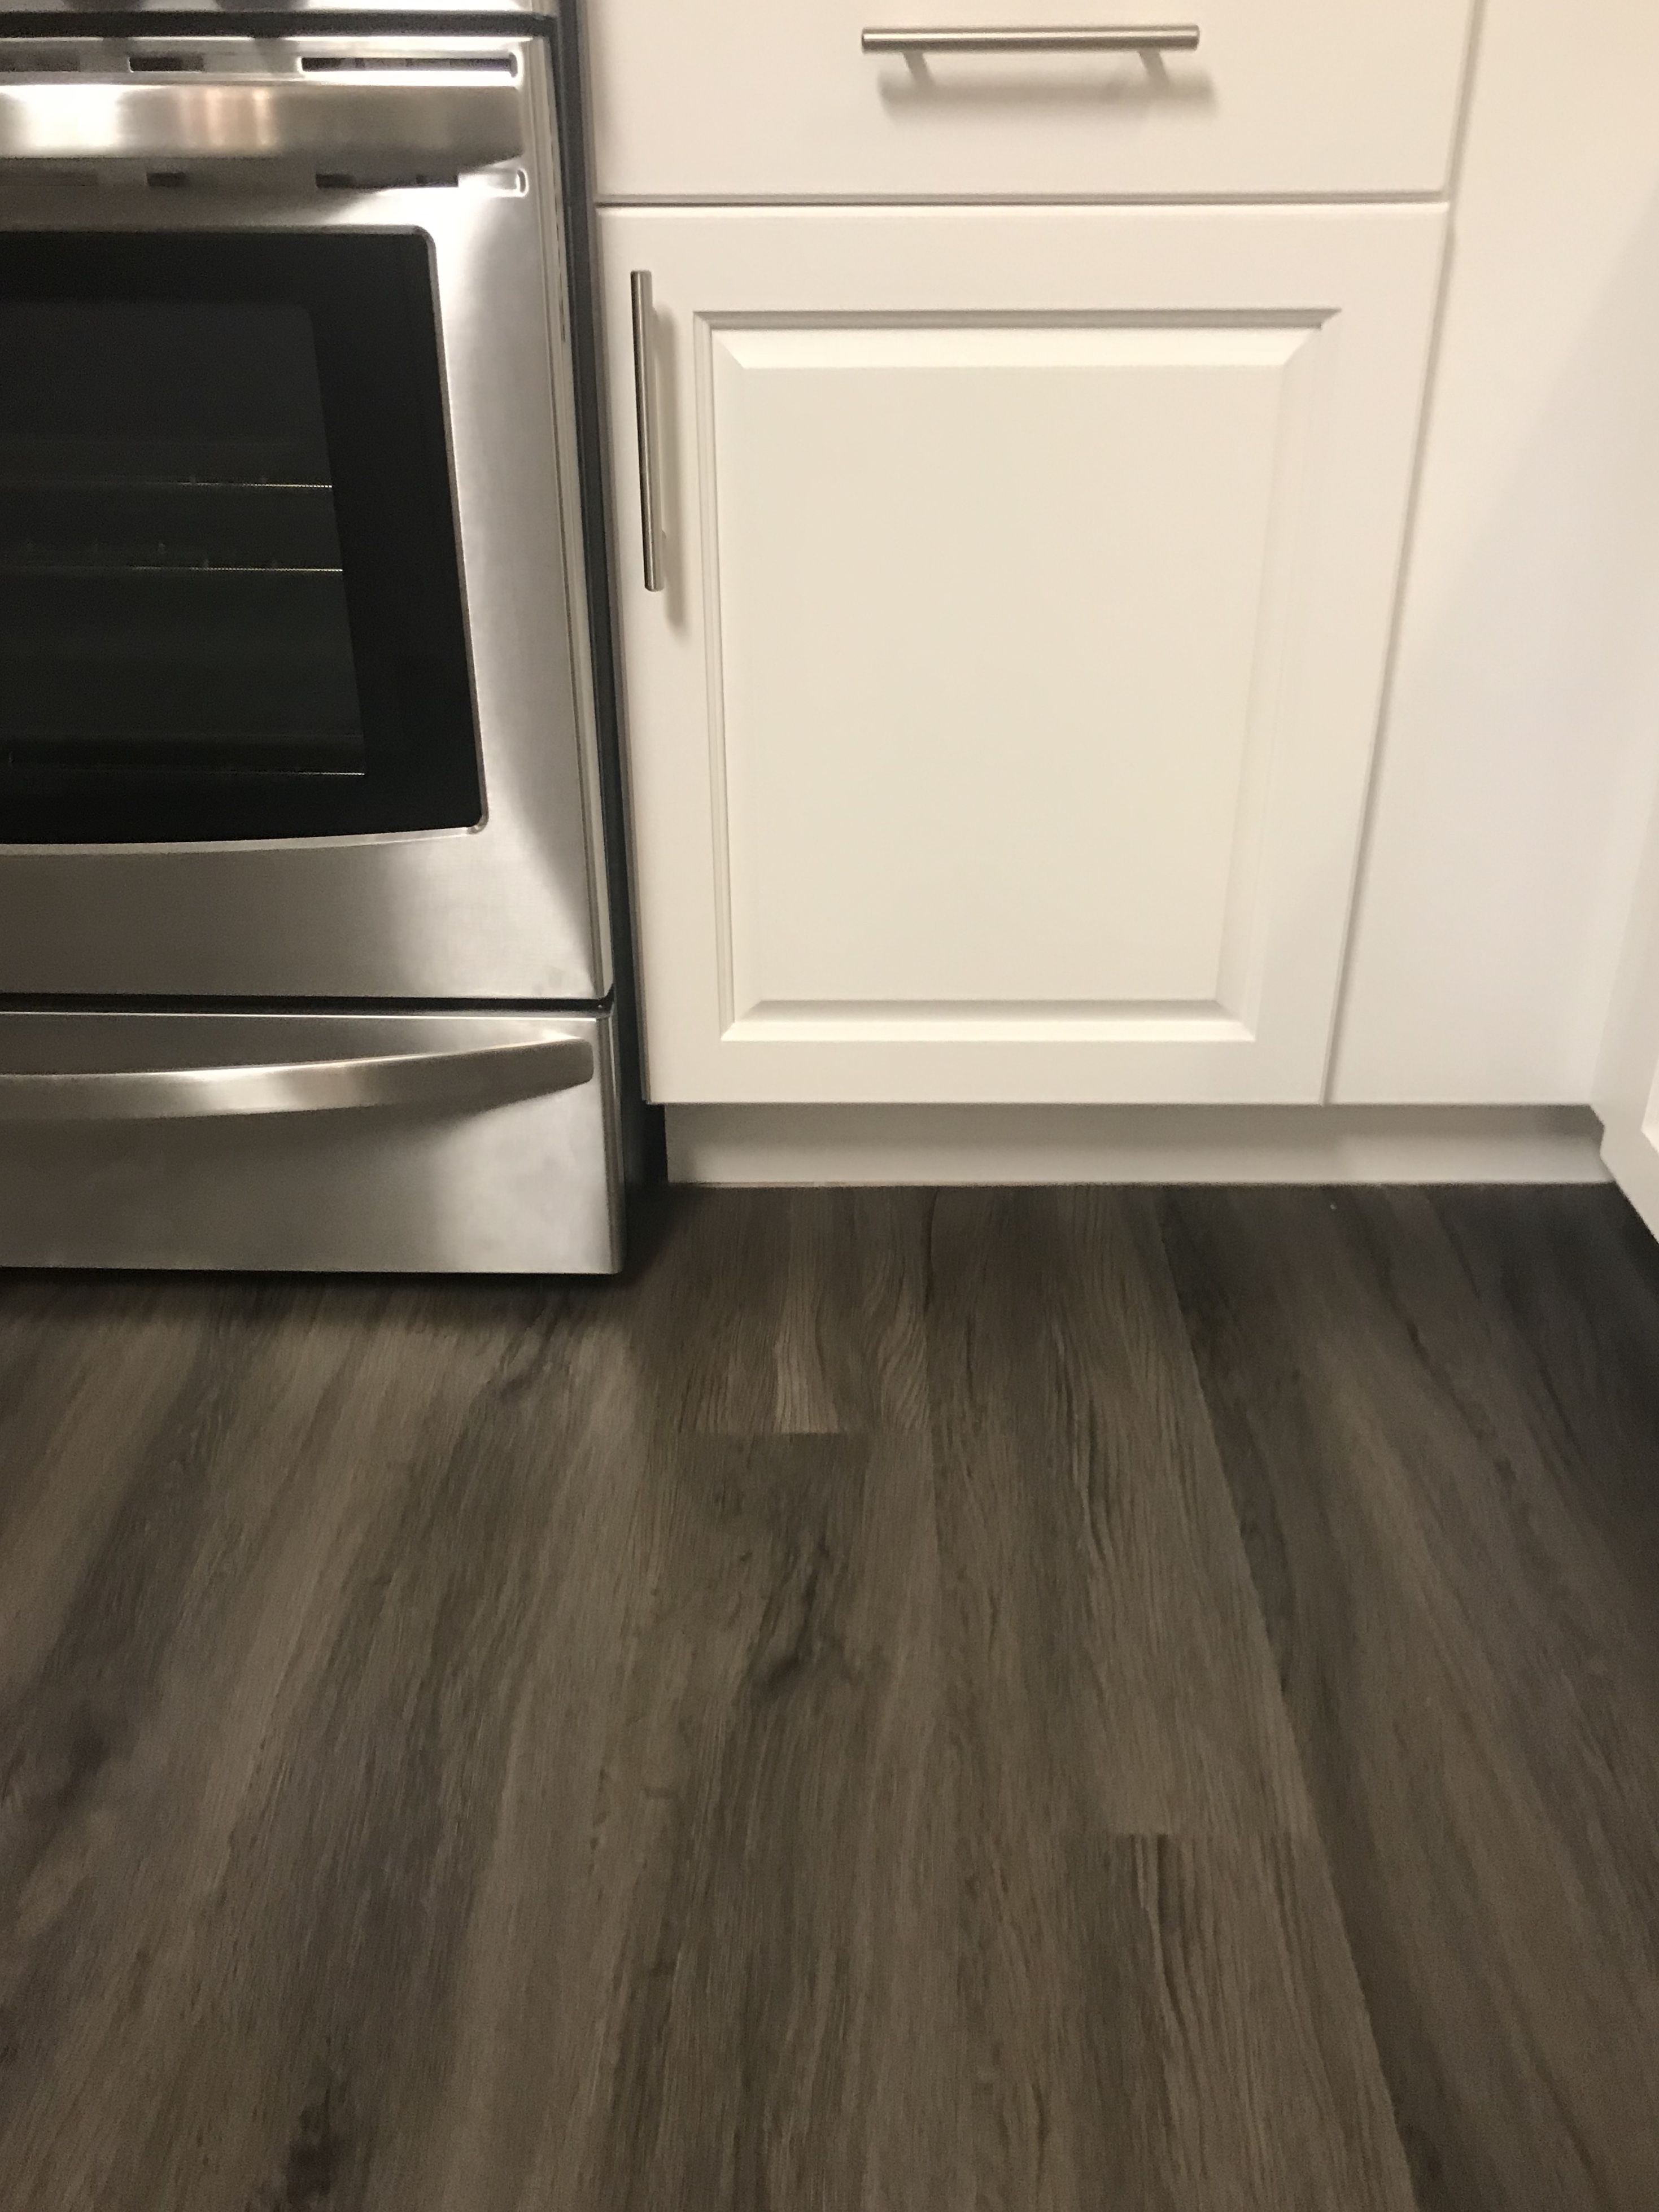 Seaside Oak 7 1 in x 47 6 in Luxury Vinyl Plank Flooring 18 73 sq